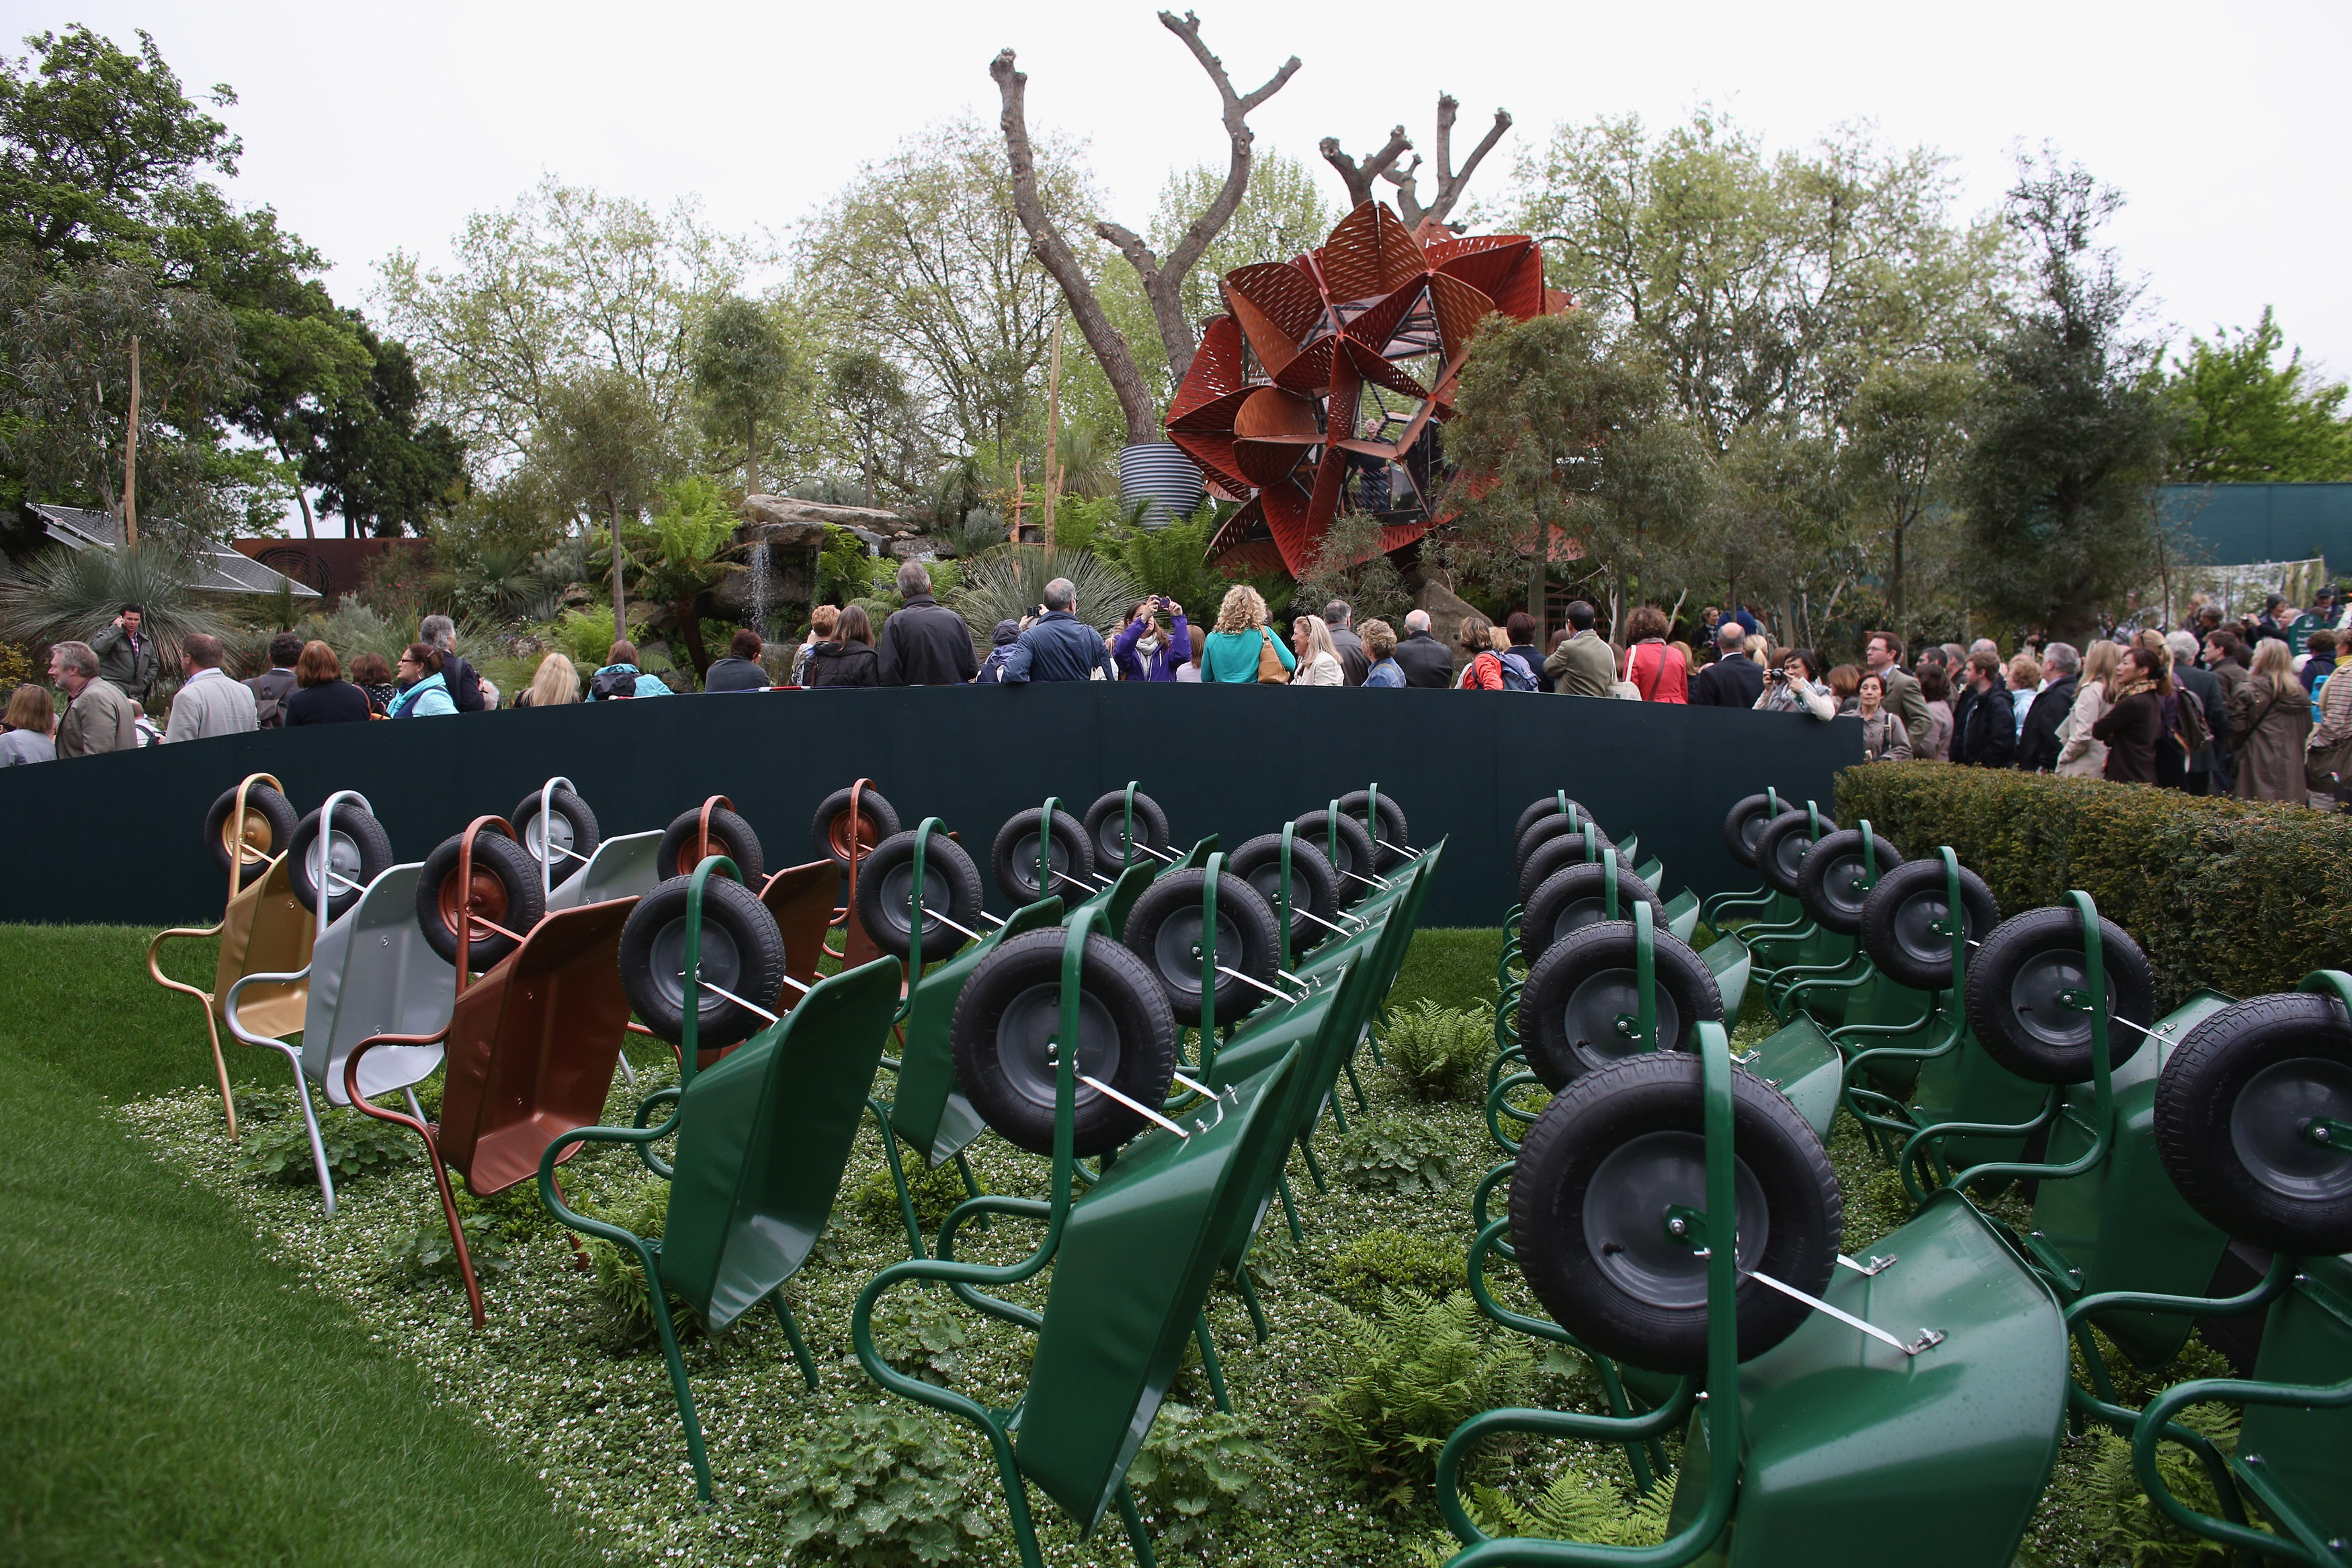 This show garden has plenty of wheelbarrows, but are there any gnomes?